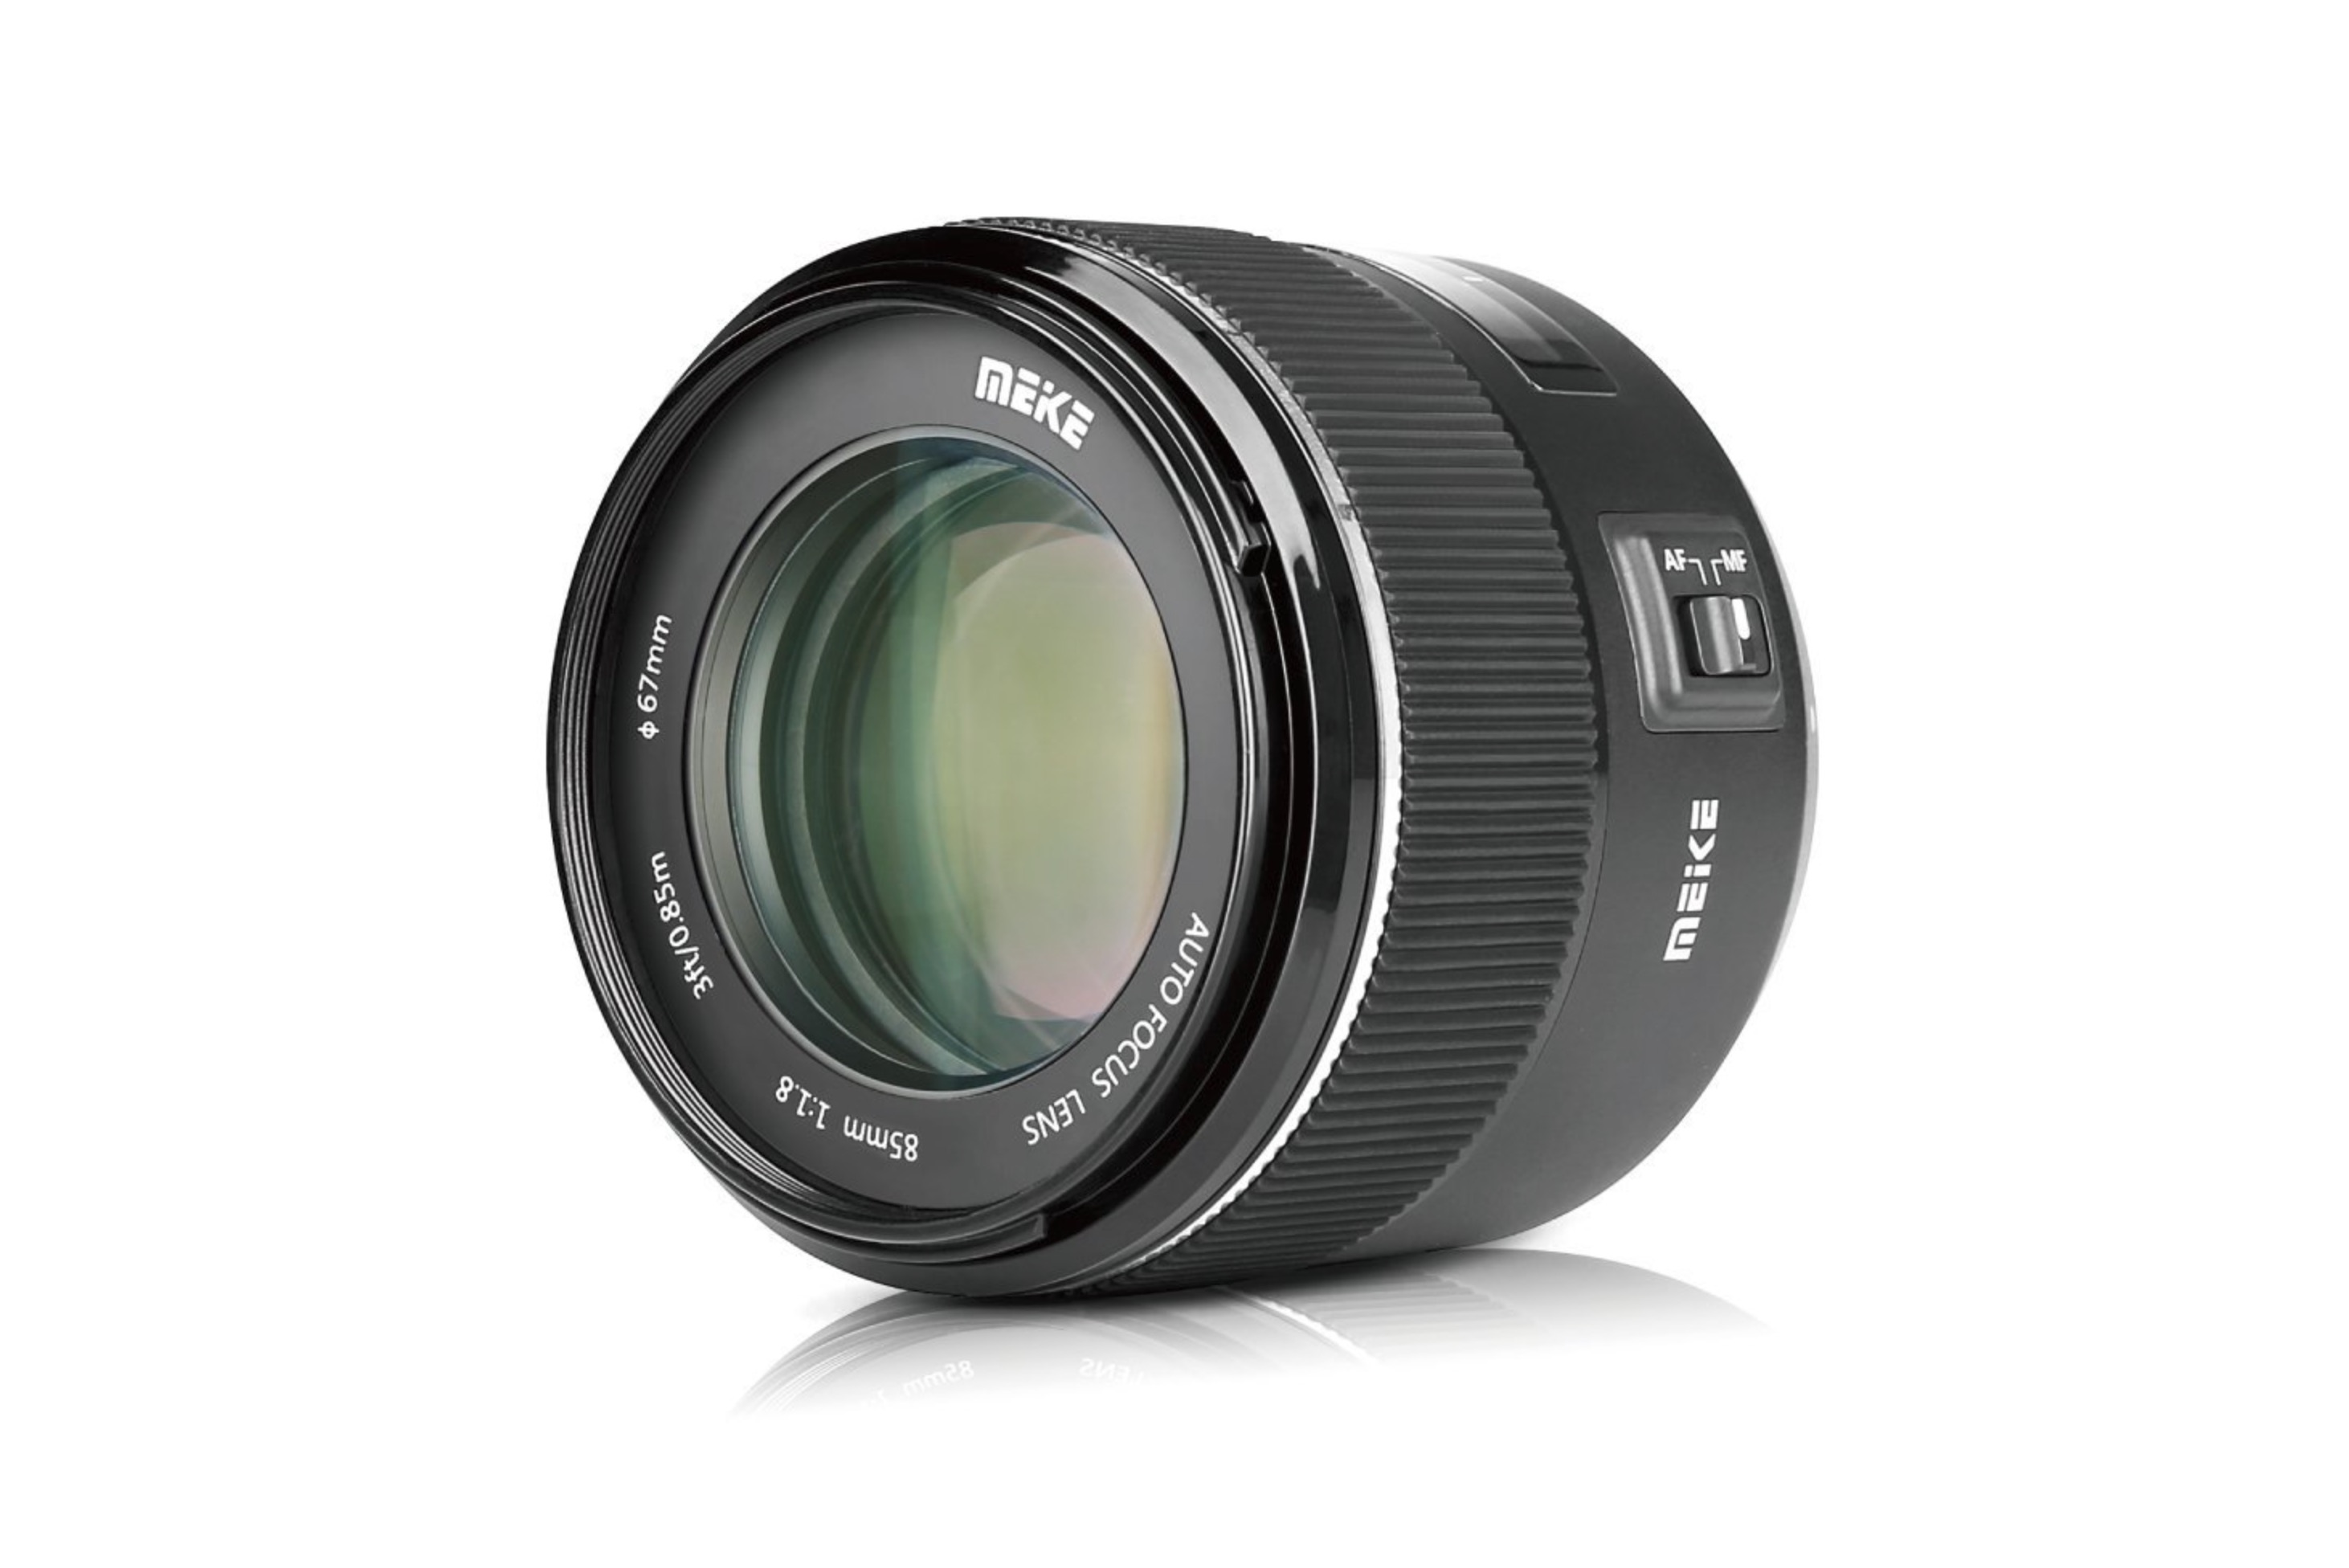 Meike's first autofocus lens is a new 85mm F1.8 prime that costs just $190:  Digital Photography Review